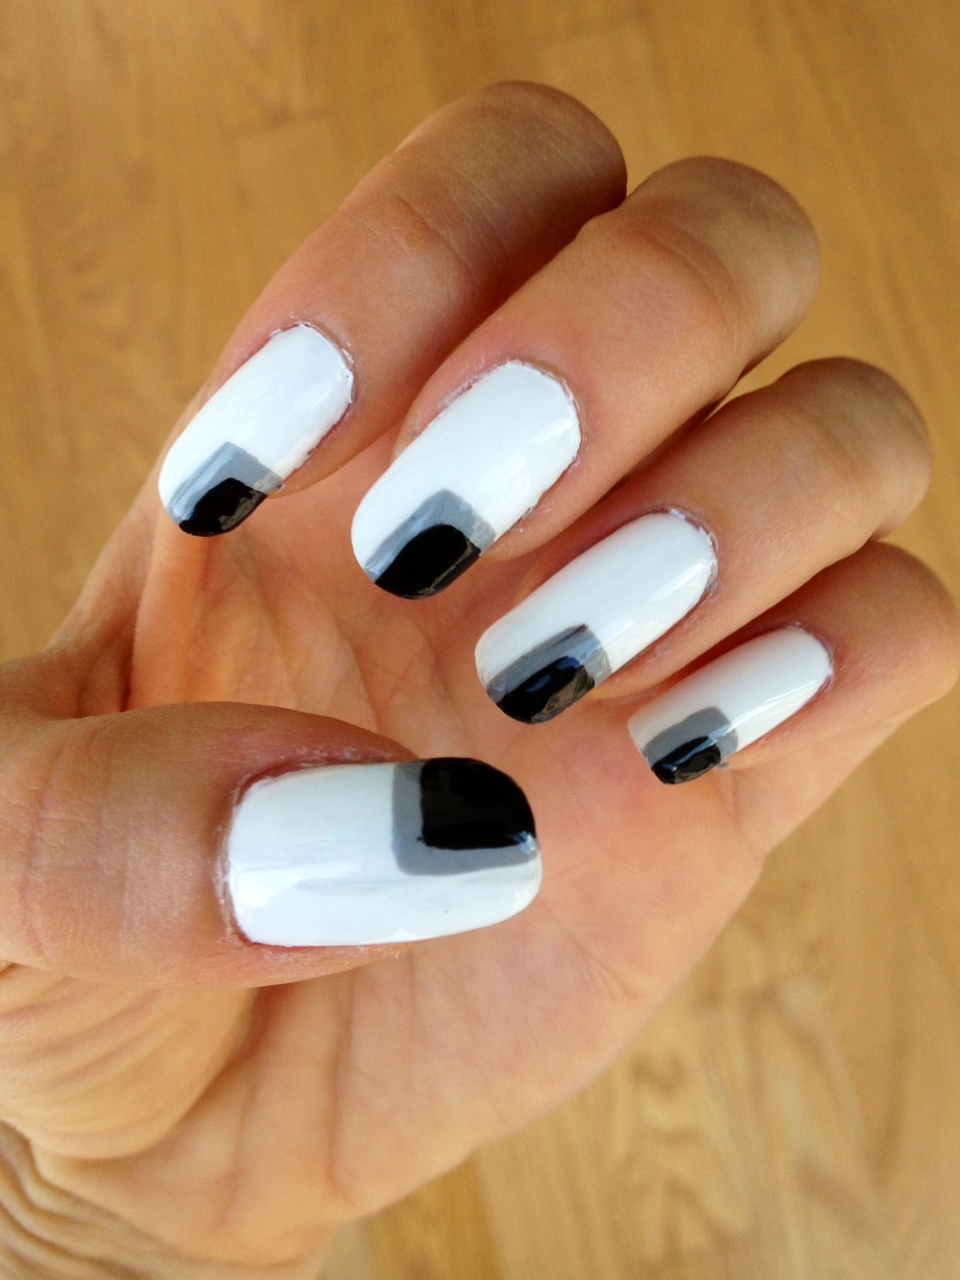 Black and White Nails | A 5\'3 Perspective